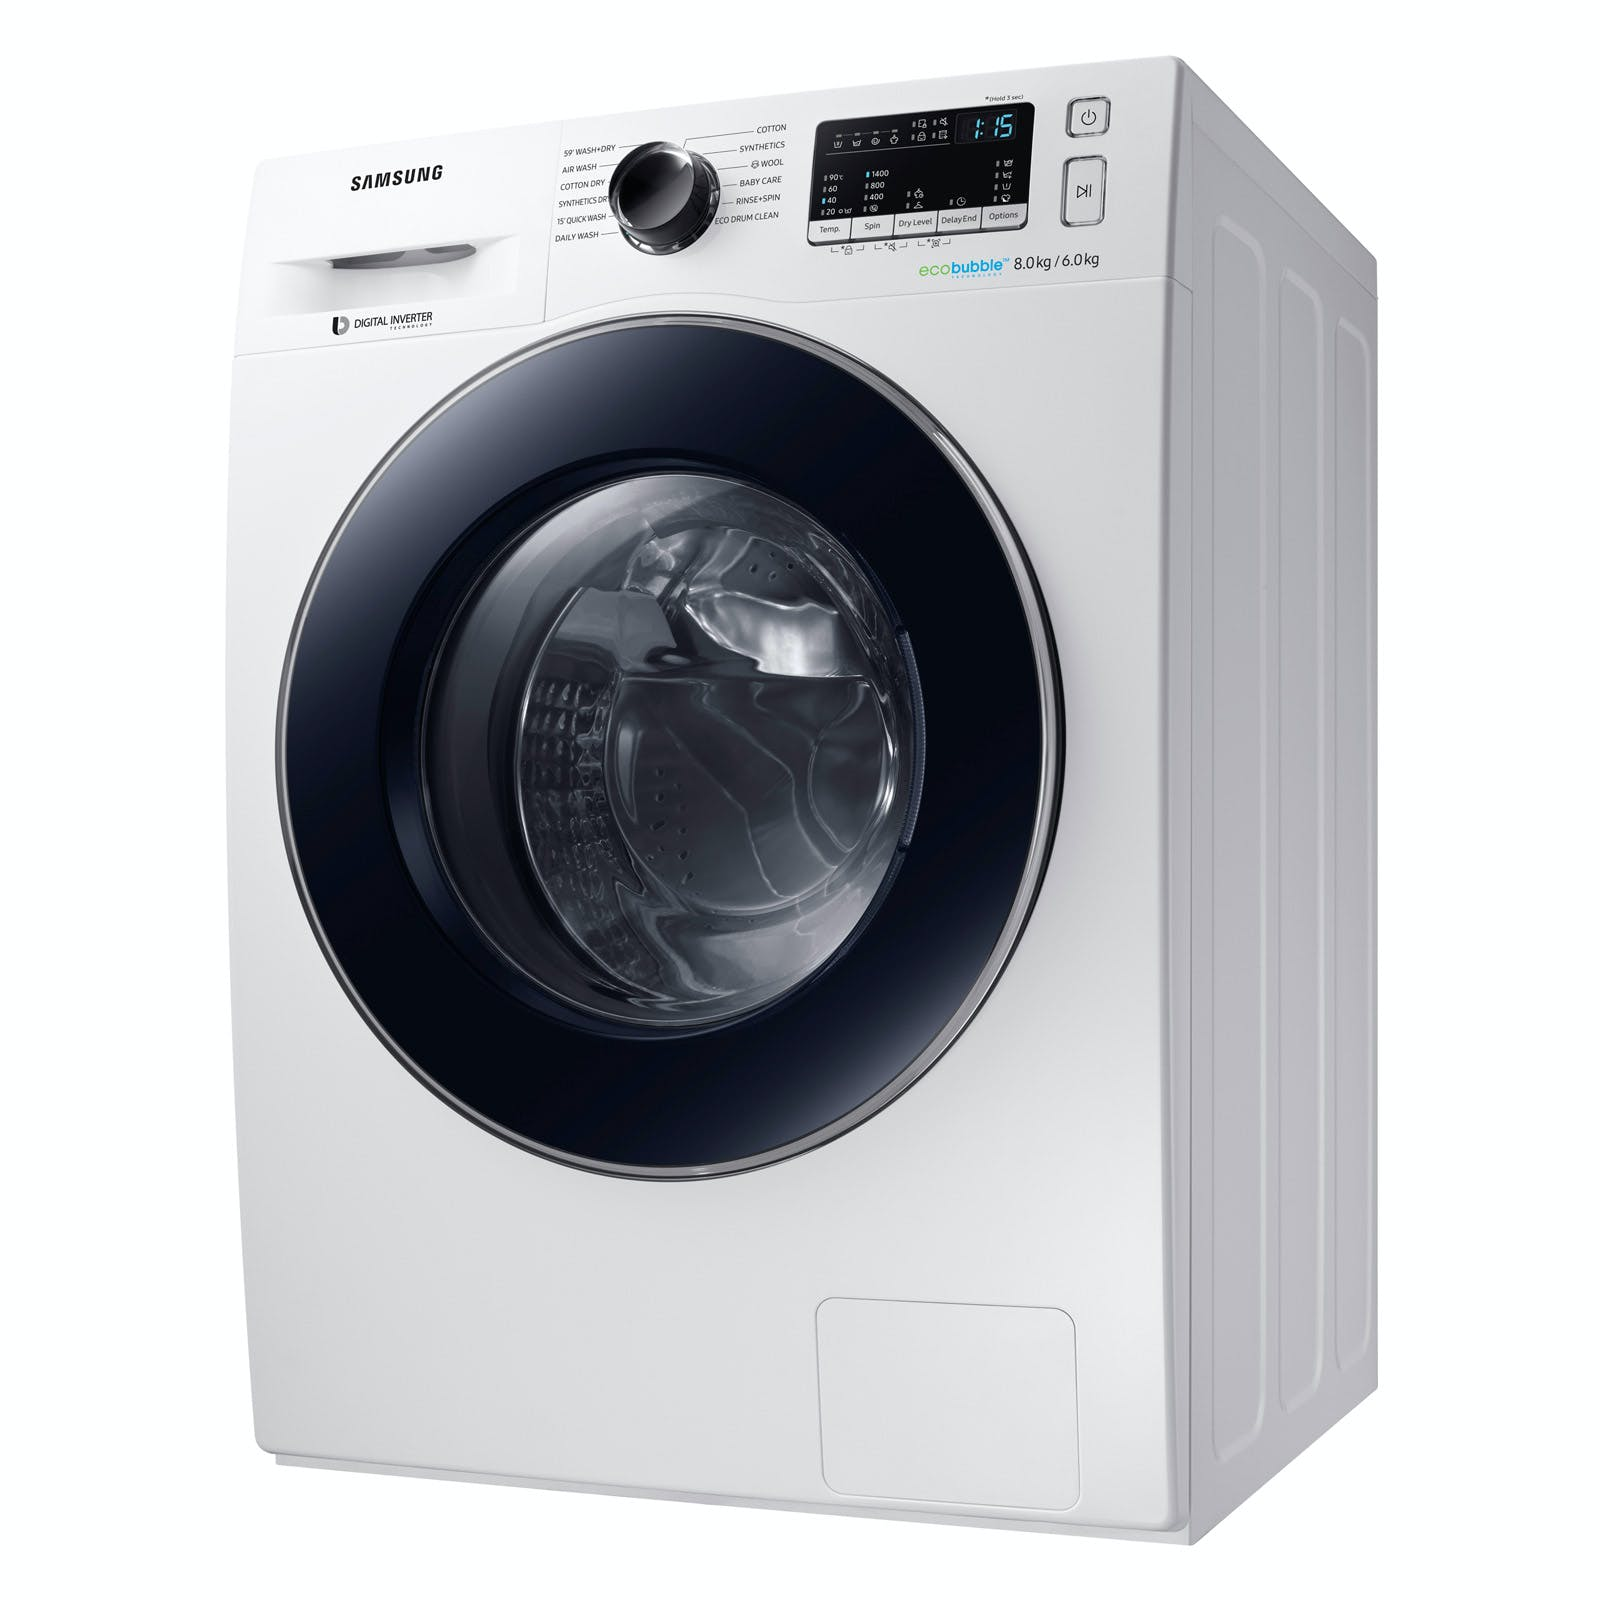 samsung wd80m4453jw eco bubble washer dryer in white 1400rpm 8kg 6kg. Black Bedroom Furniture Sets. Home Design Ideas